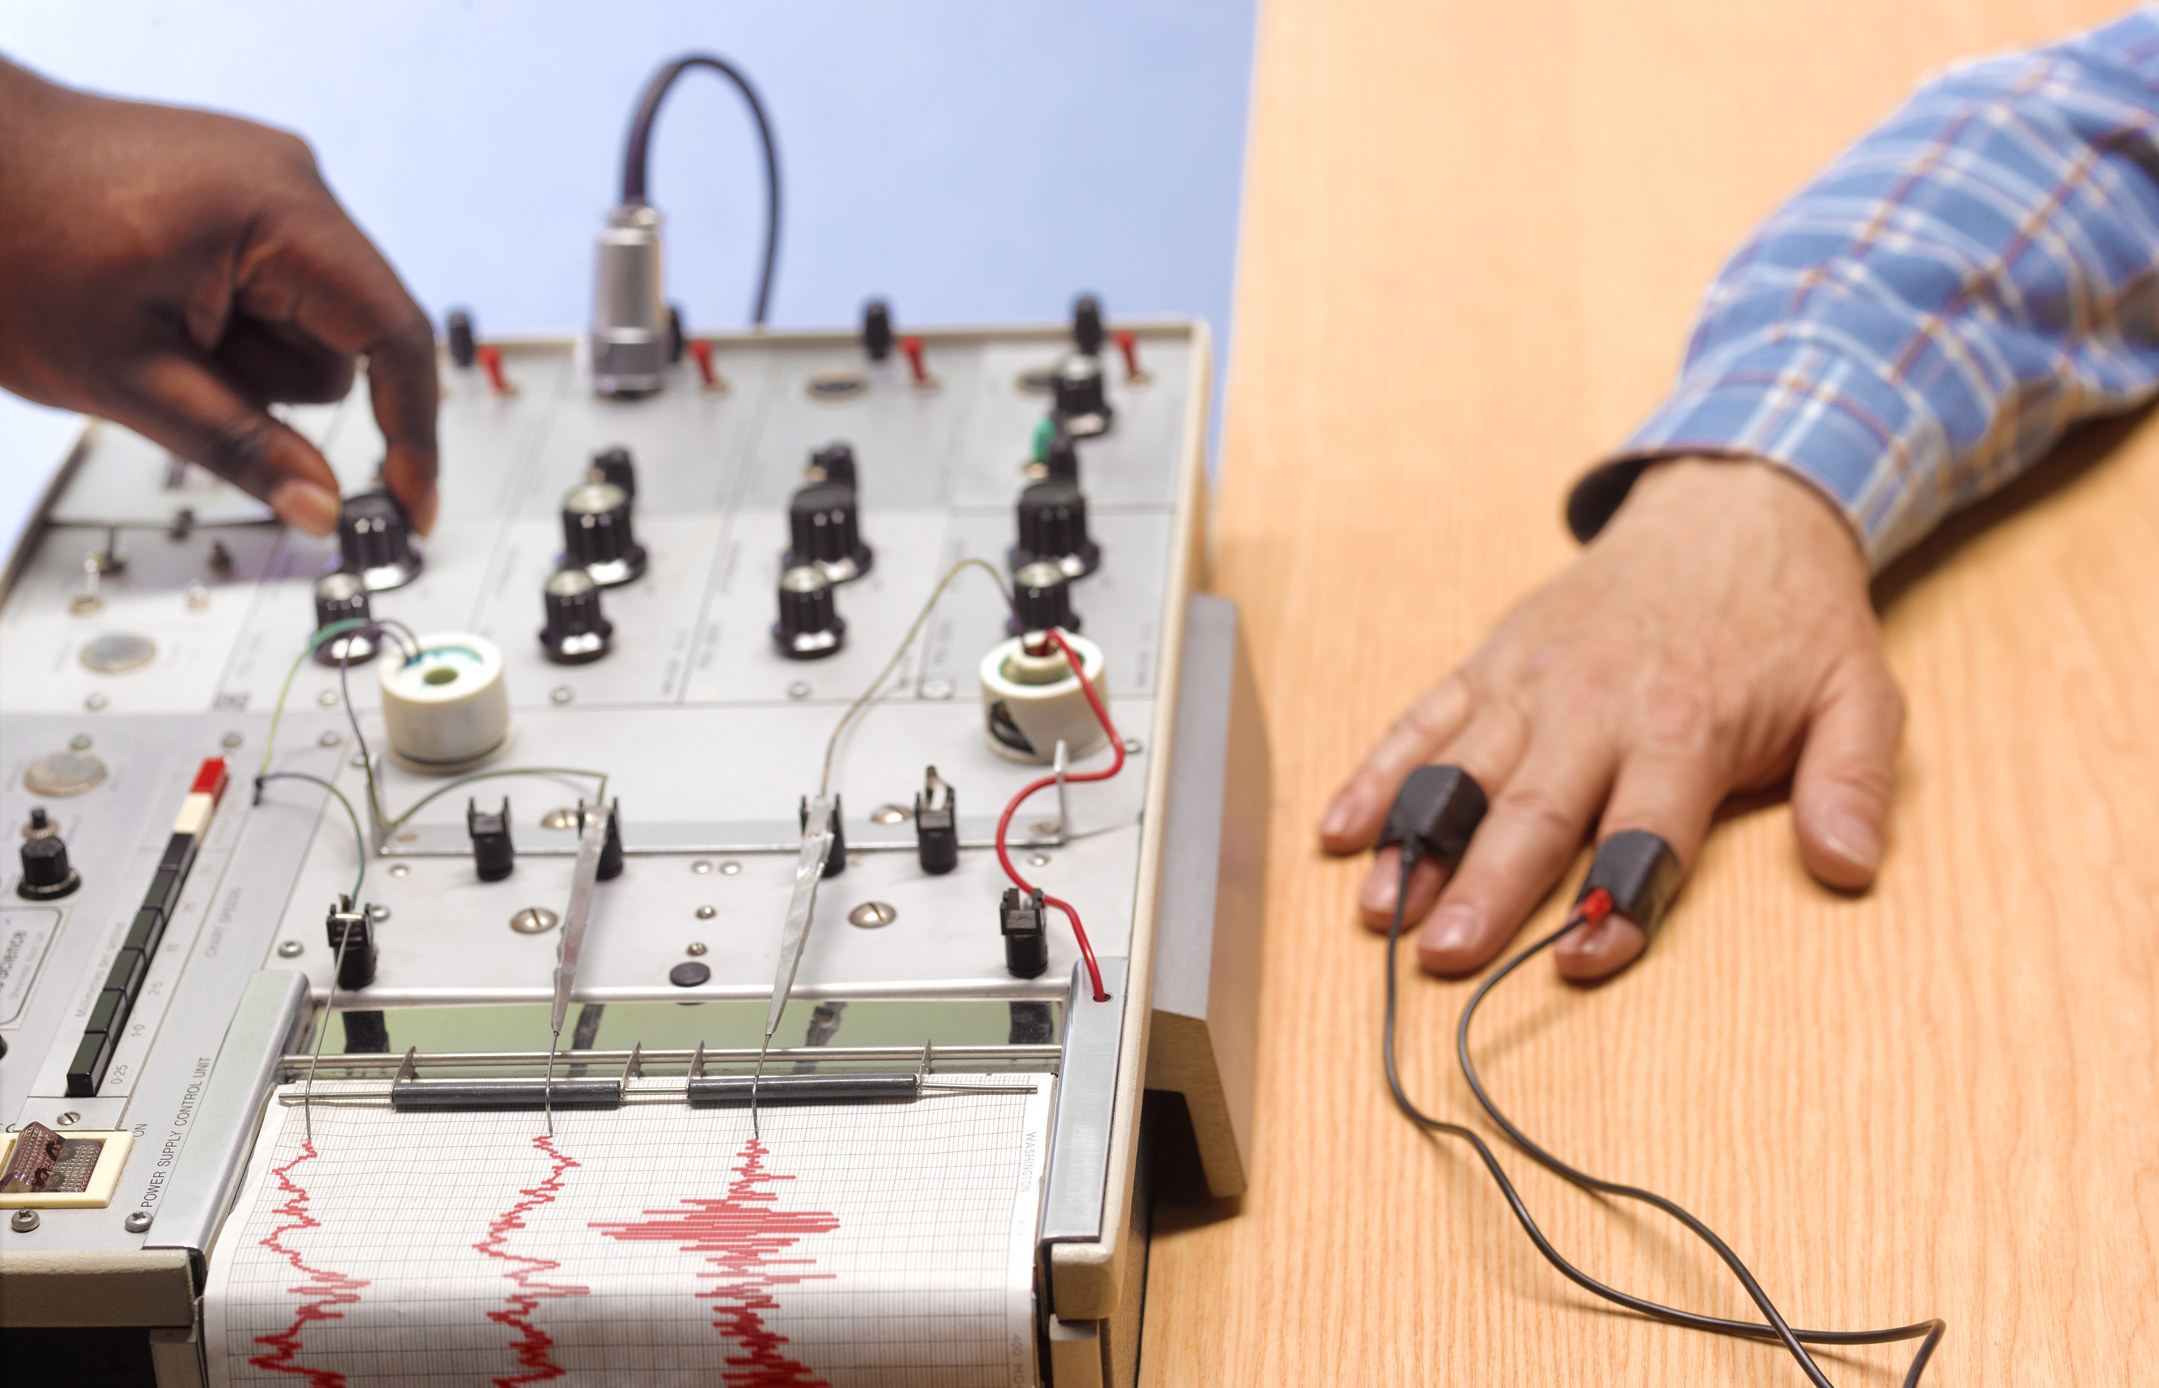 A polygraph test with a hand on one knob across from a man's hand on the table connected by sensors on index and ring fingers